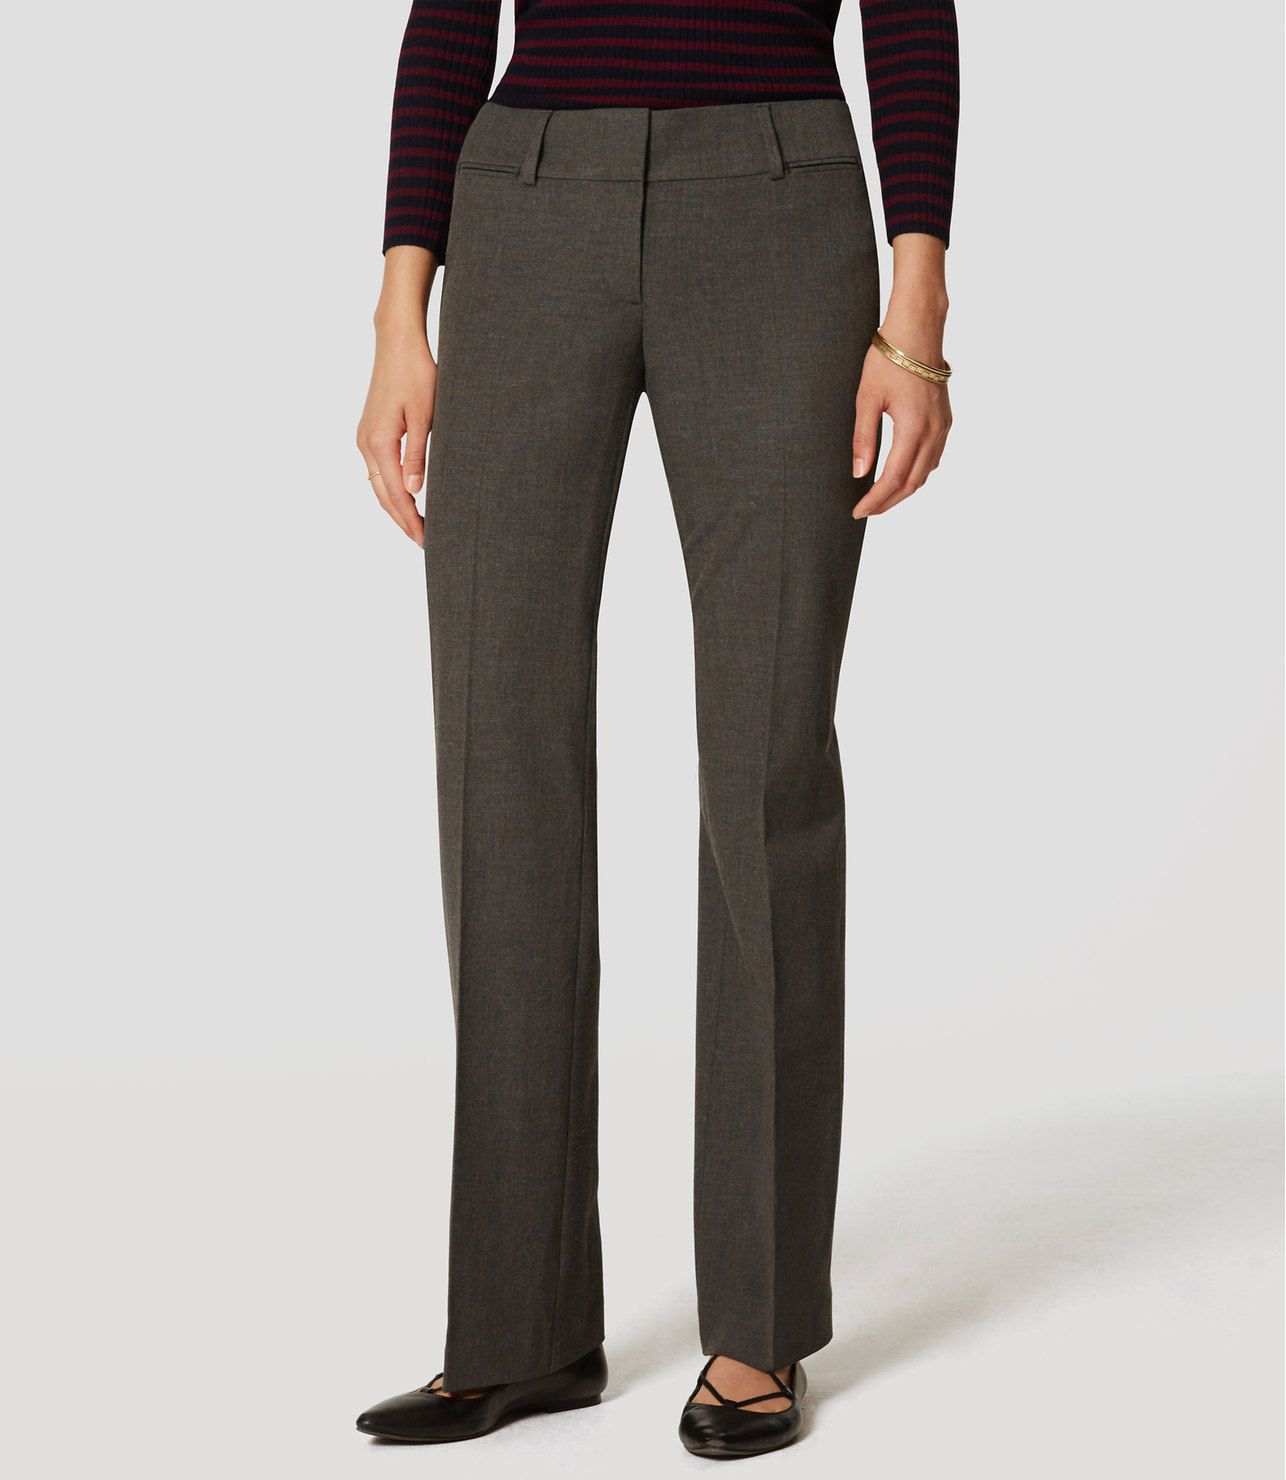 Women's straight leg Tailored Office style Work Trousers Pants Grey Brown 8 16 | eBay